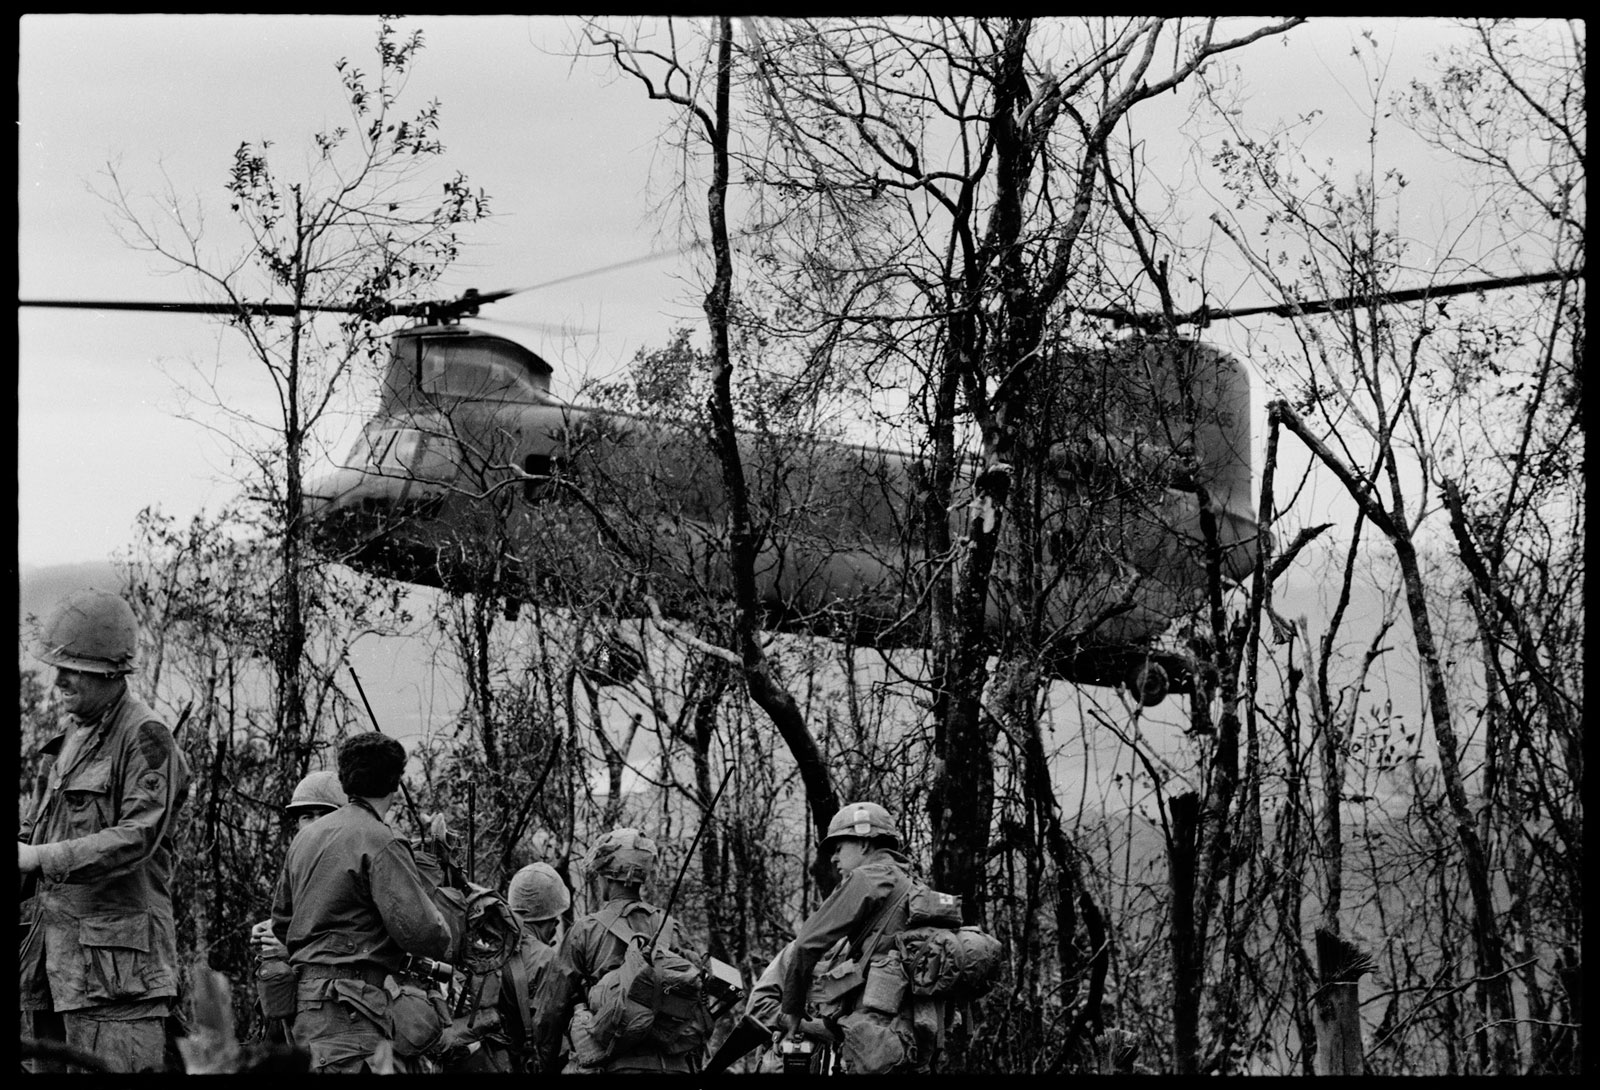 chinook helicopter vietnam with Vietnam 19661968 on Vietnam War 40 Years Ago 75 Beathtaking likewise Arsenal Ch 47c Chinook Helicopter likewise Helicopteros De  bate additionally A soldiers eye rediscovered pi together with In Mannheim Victims Families Remember Another 9 11 Tragedy 1.